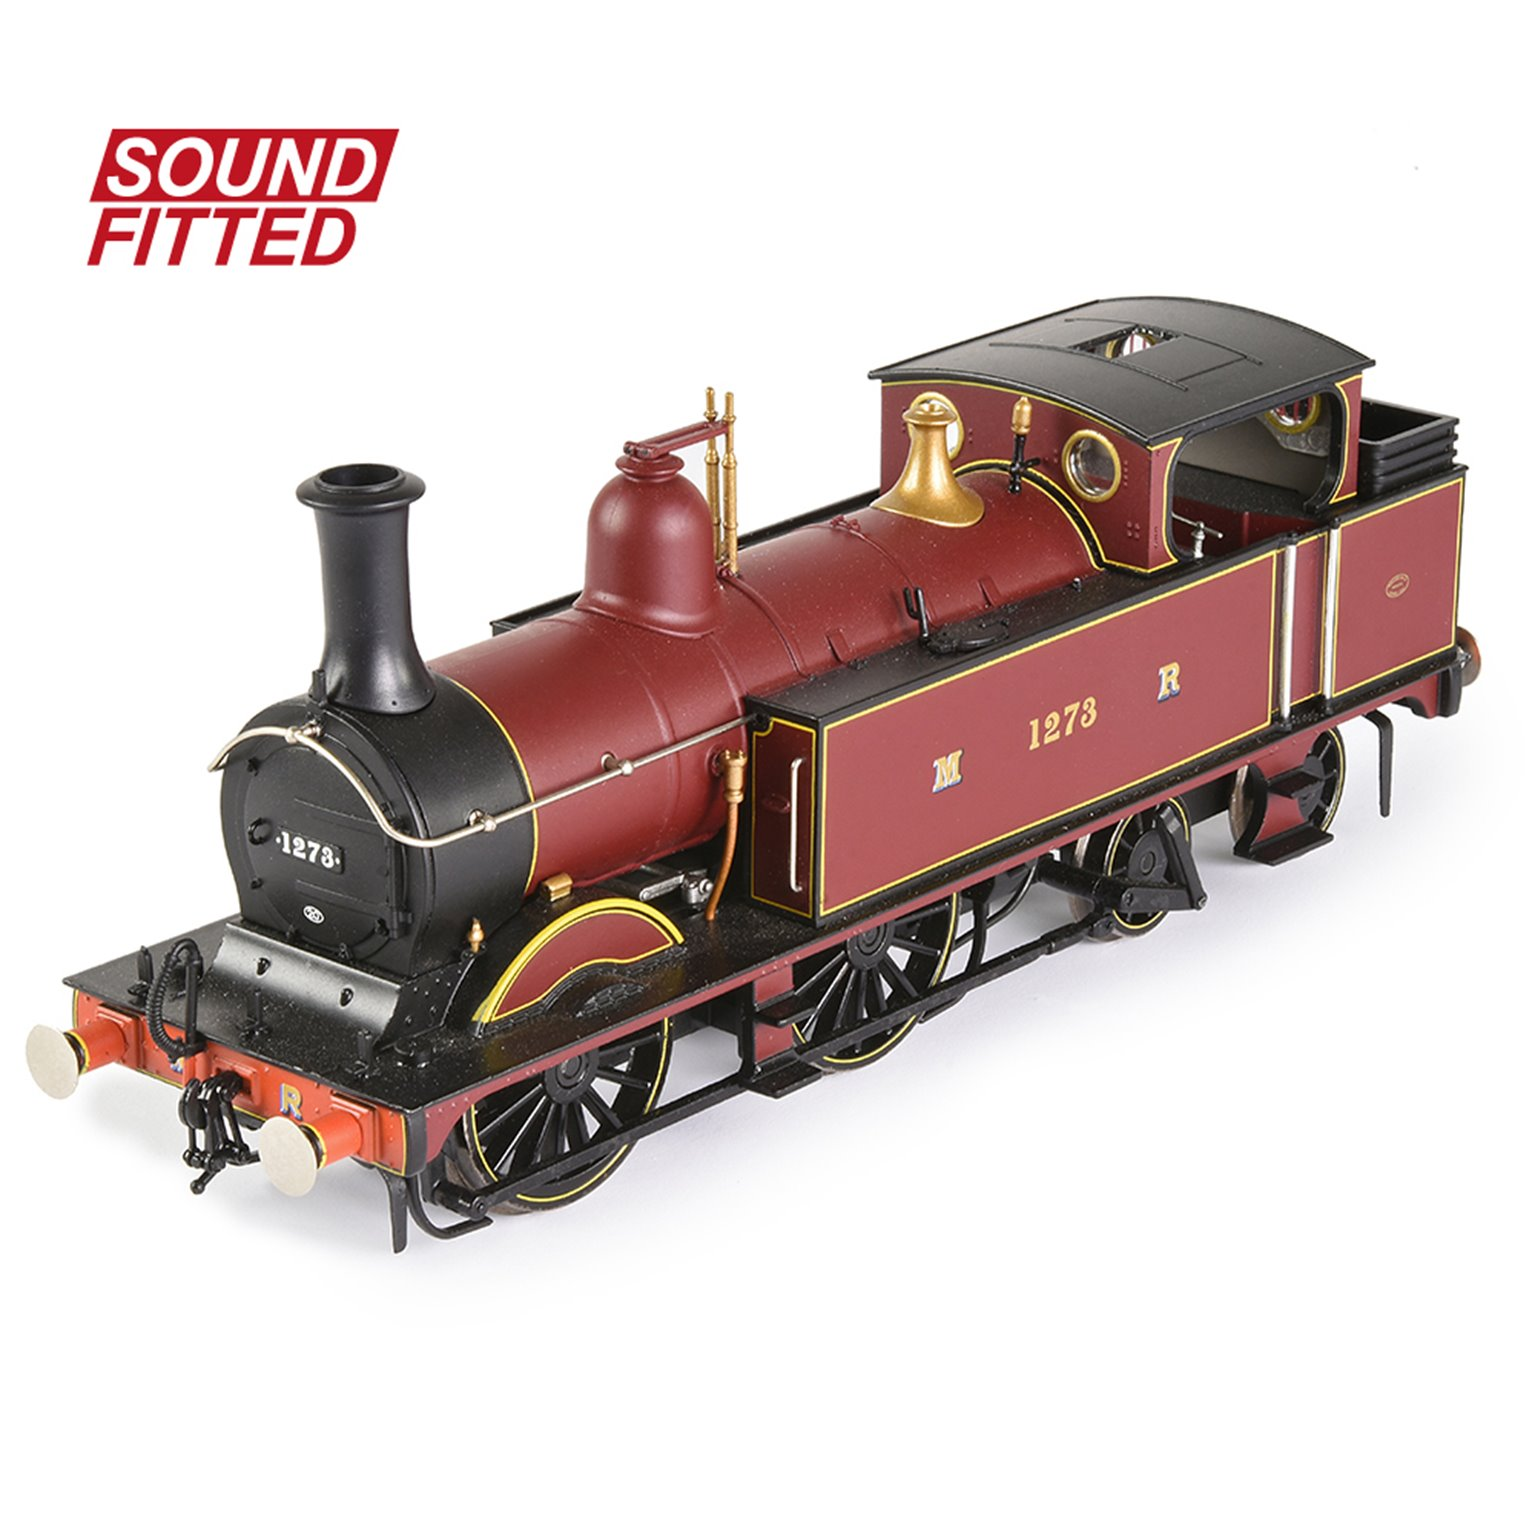 MR 1532 (1P) Tank 1273 Midland Railway Crimson Lake DCC Sound